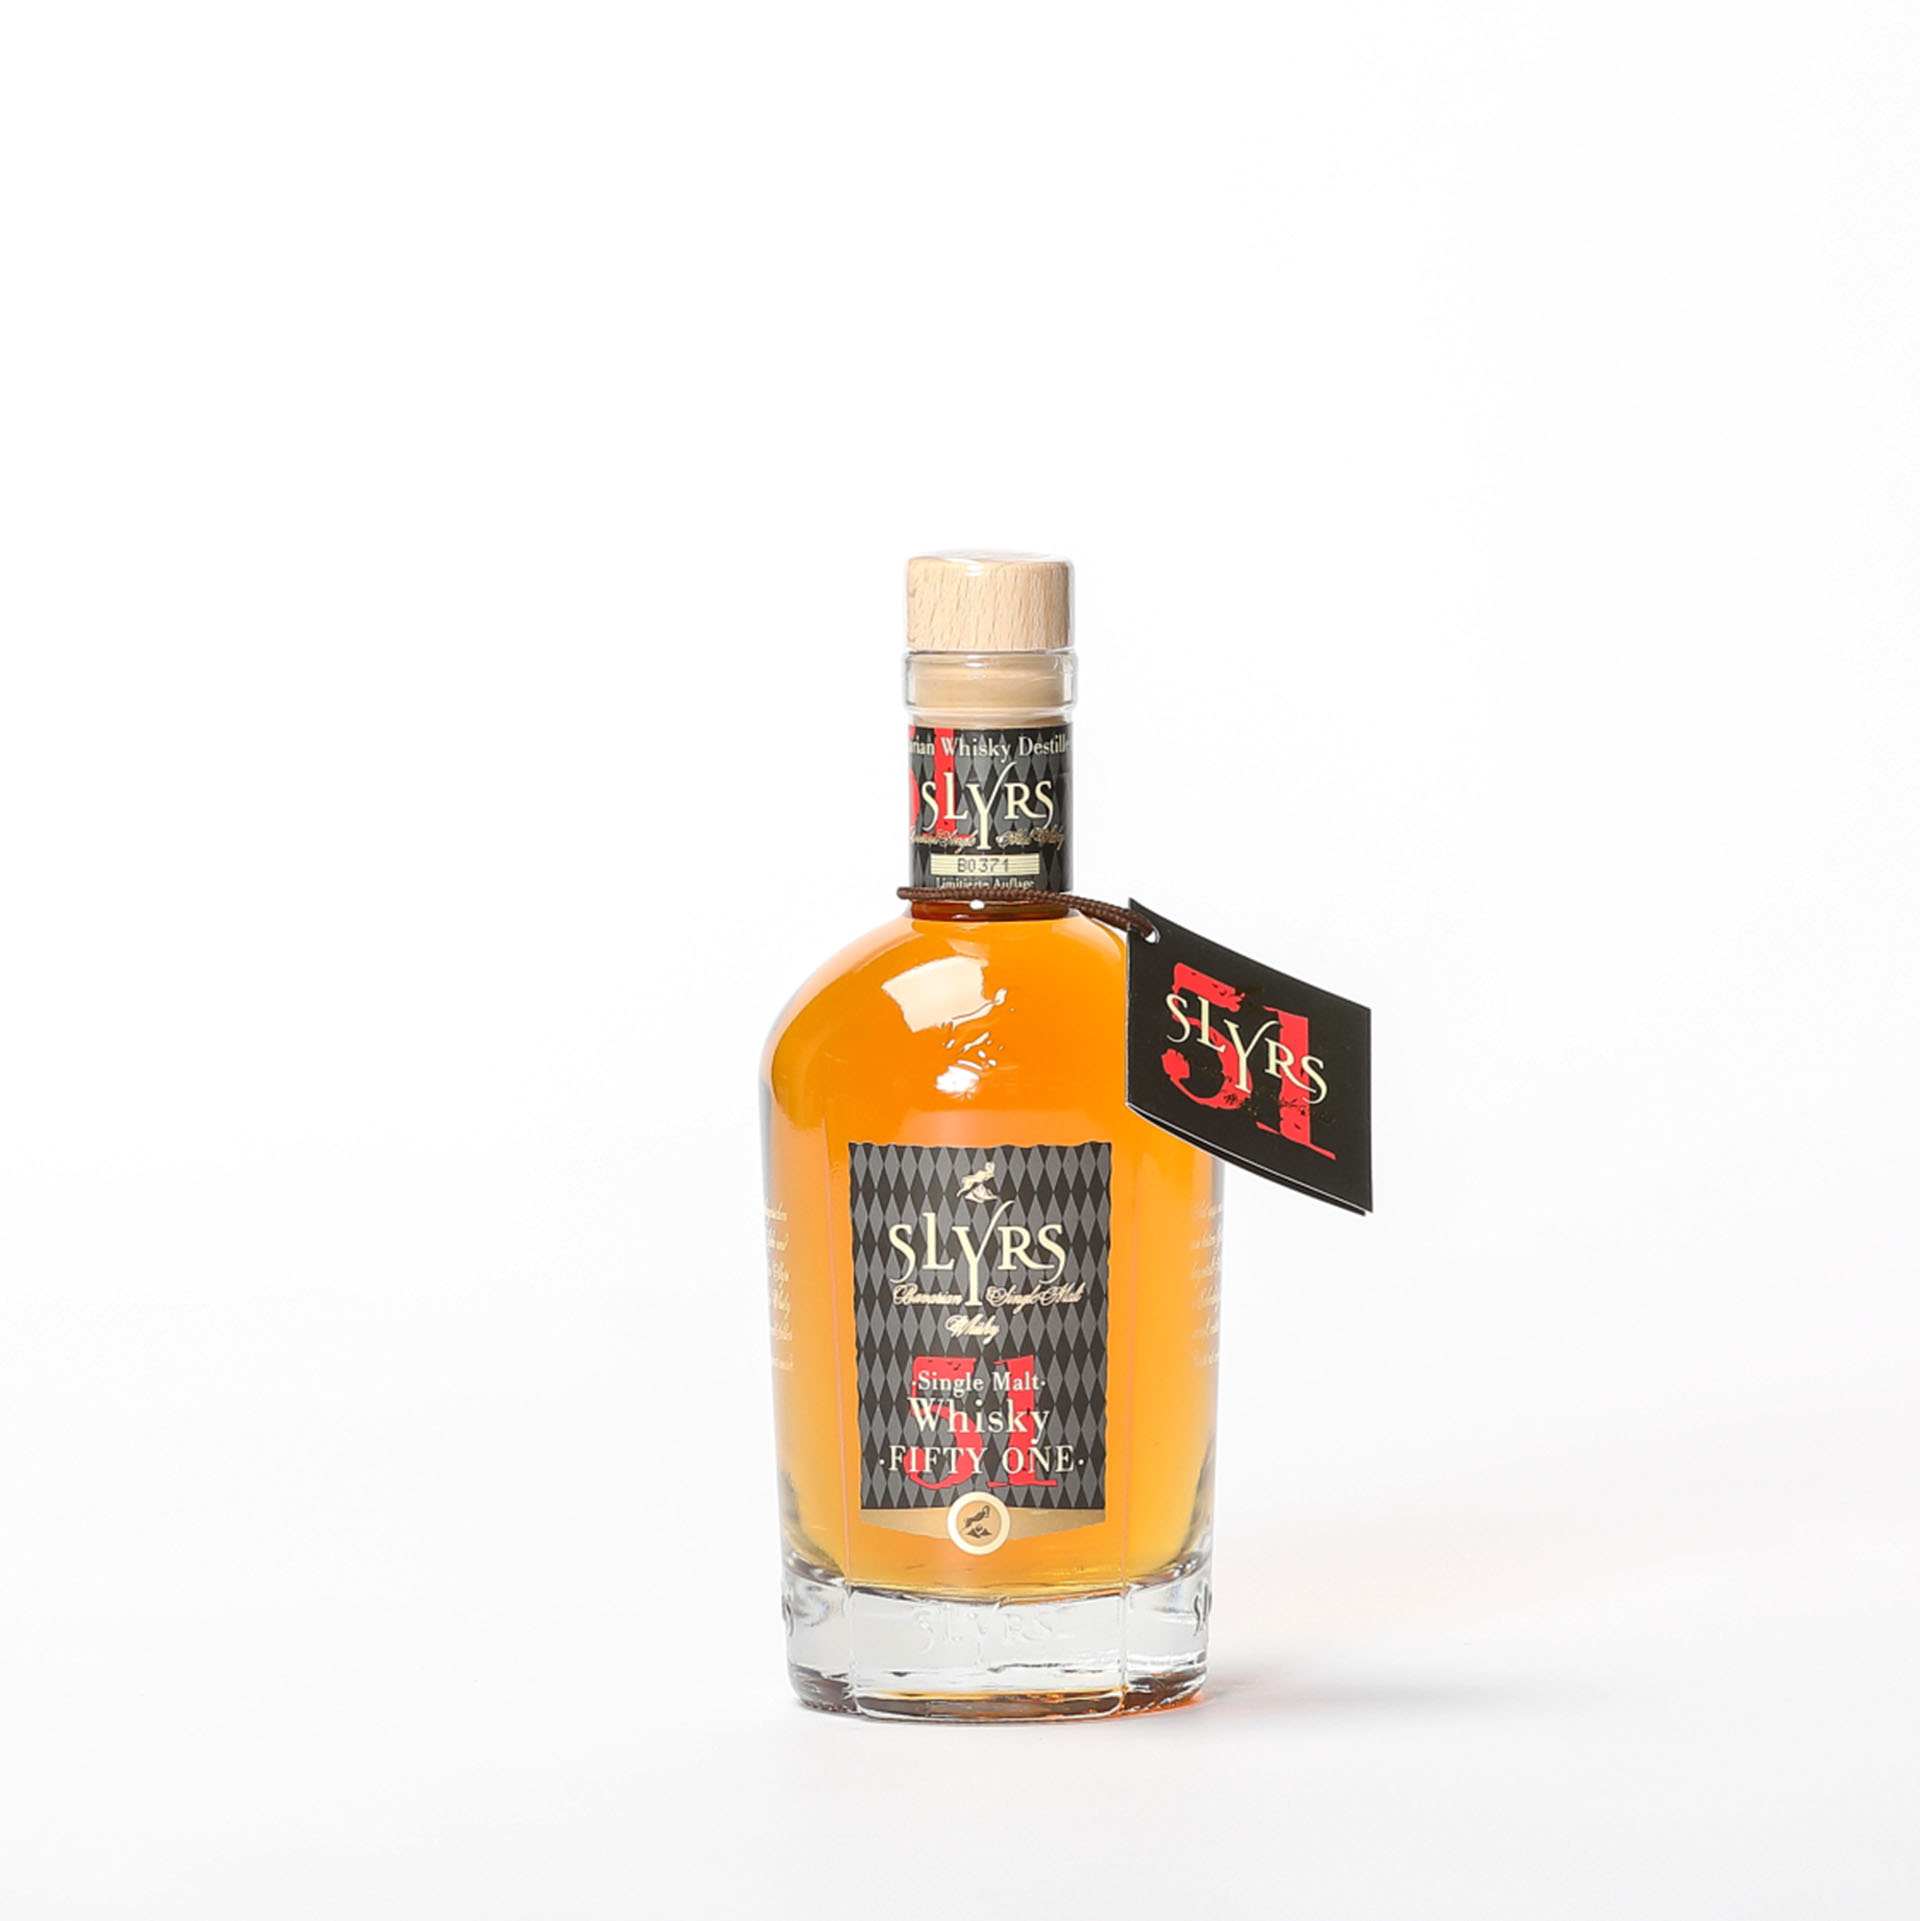 Single Malt Whisky Fifty One - Slyrs Destillerie